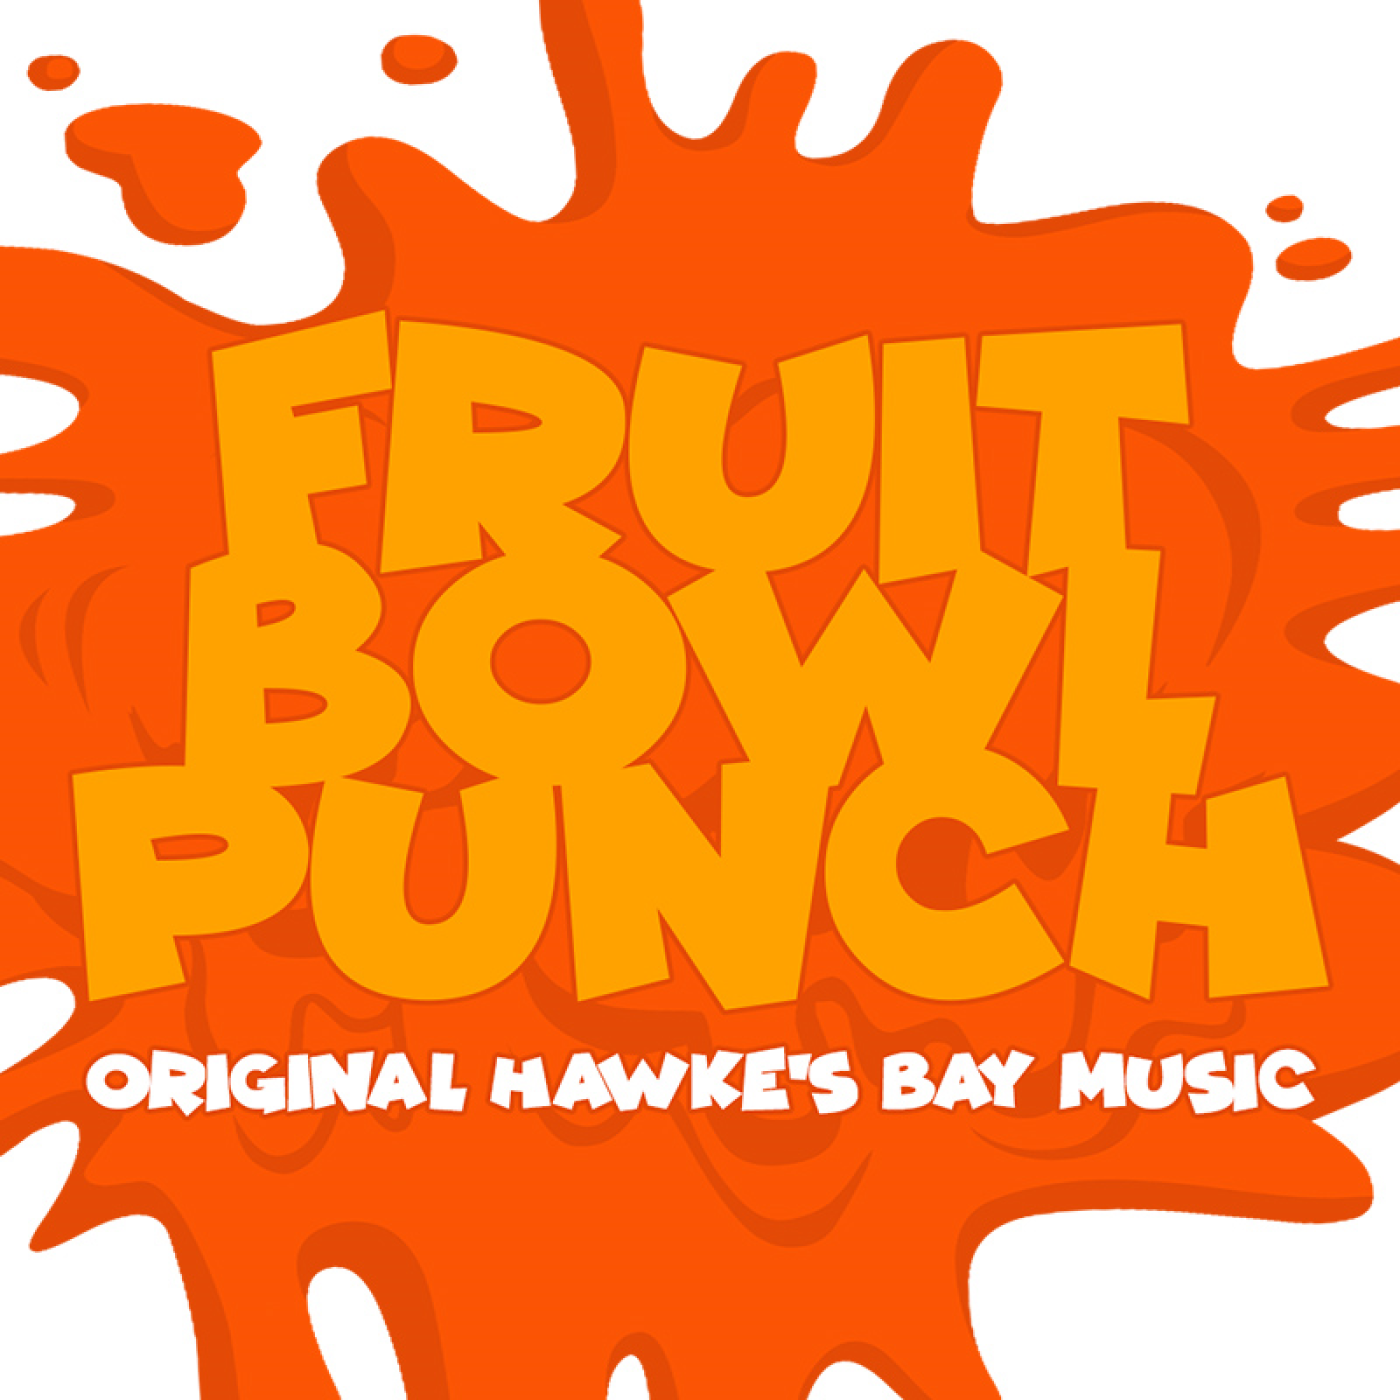 https://cdn.accessradio.org/StationFolder/kidnappers/Images/Fruit Bowl Punch.png